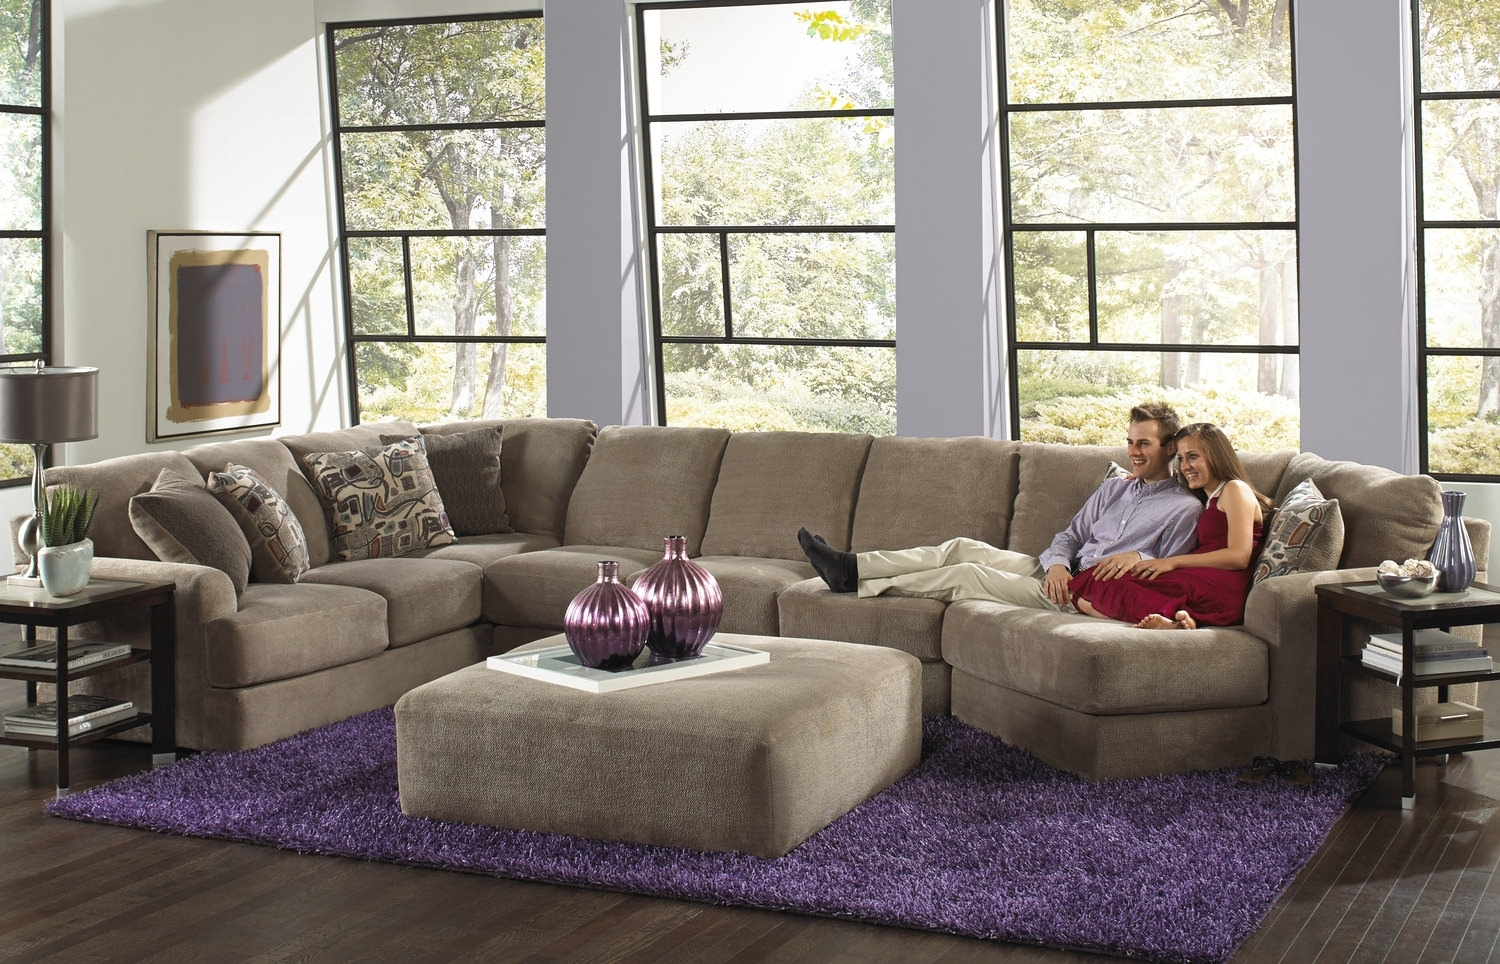 Regal 3 Piece Modular Sectional | Hom Furniture With Jackson 6 Piece Power Reclining Sectionals (Image 20 of 25)